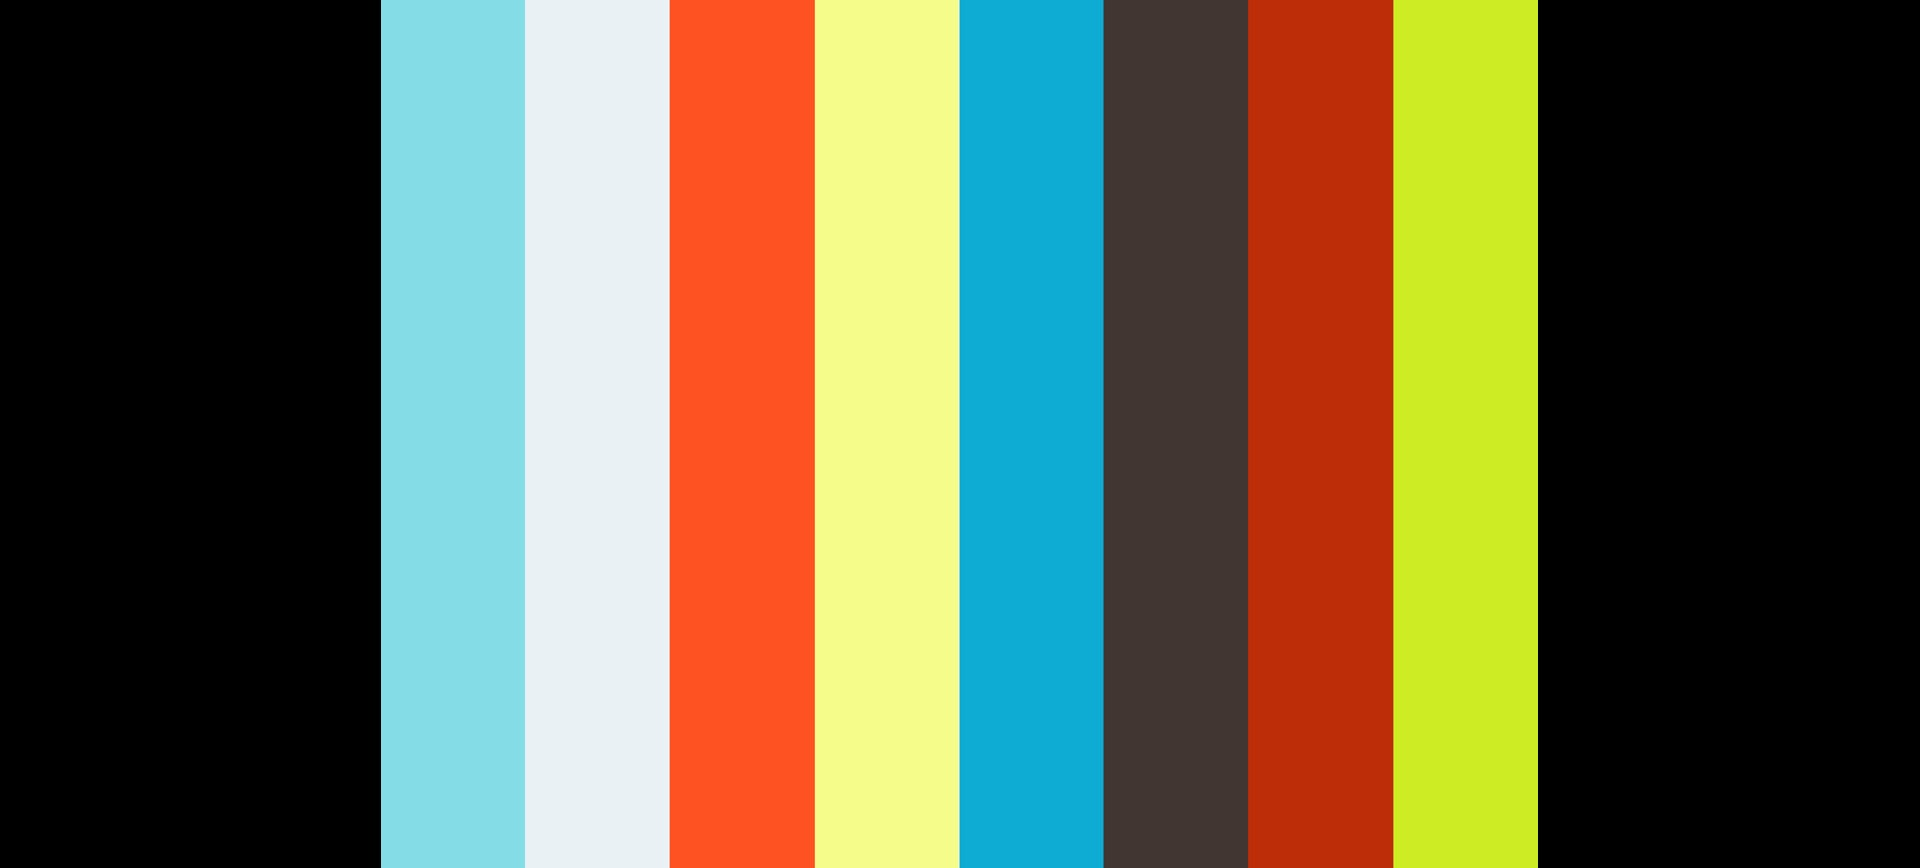 PANNA Breakfast Digital Menu